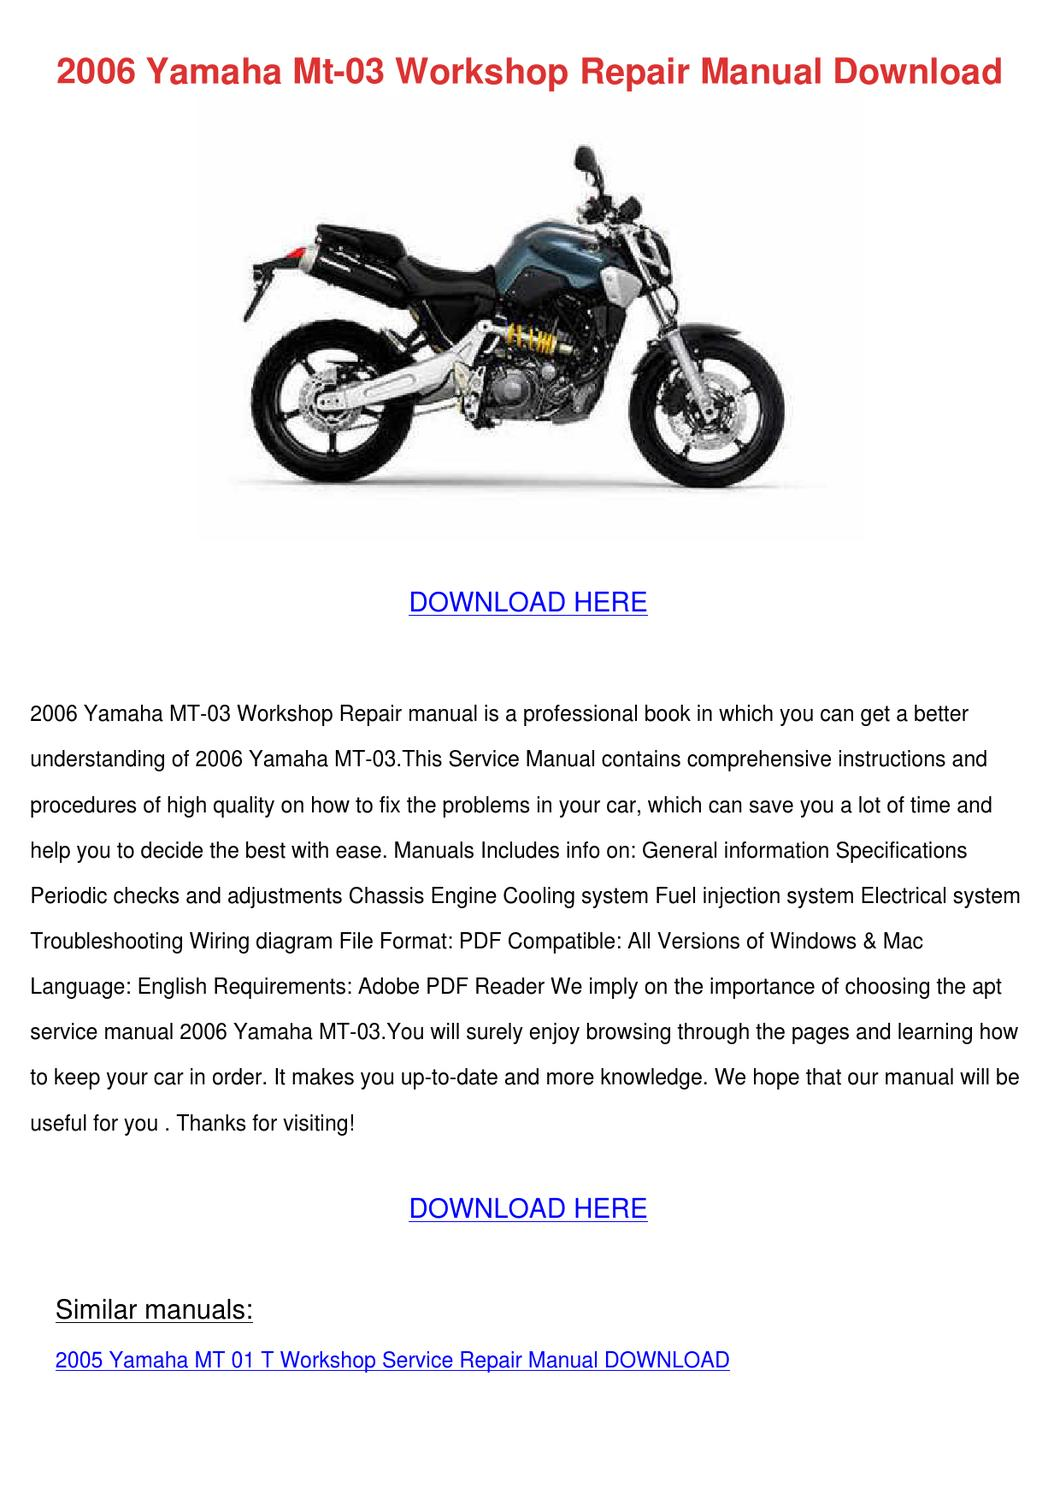 2006 Yamaha Mt 03 Workshop Repair Manual Down By